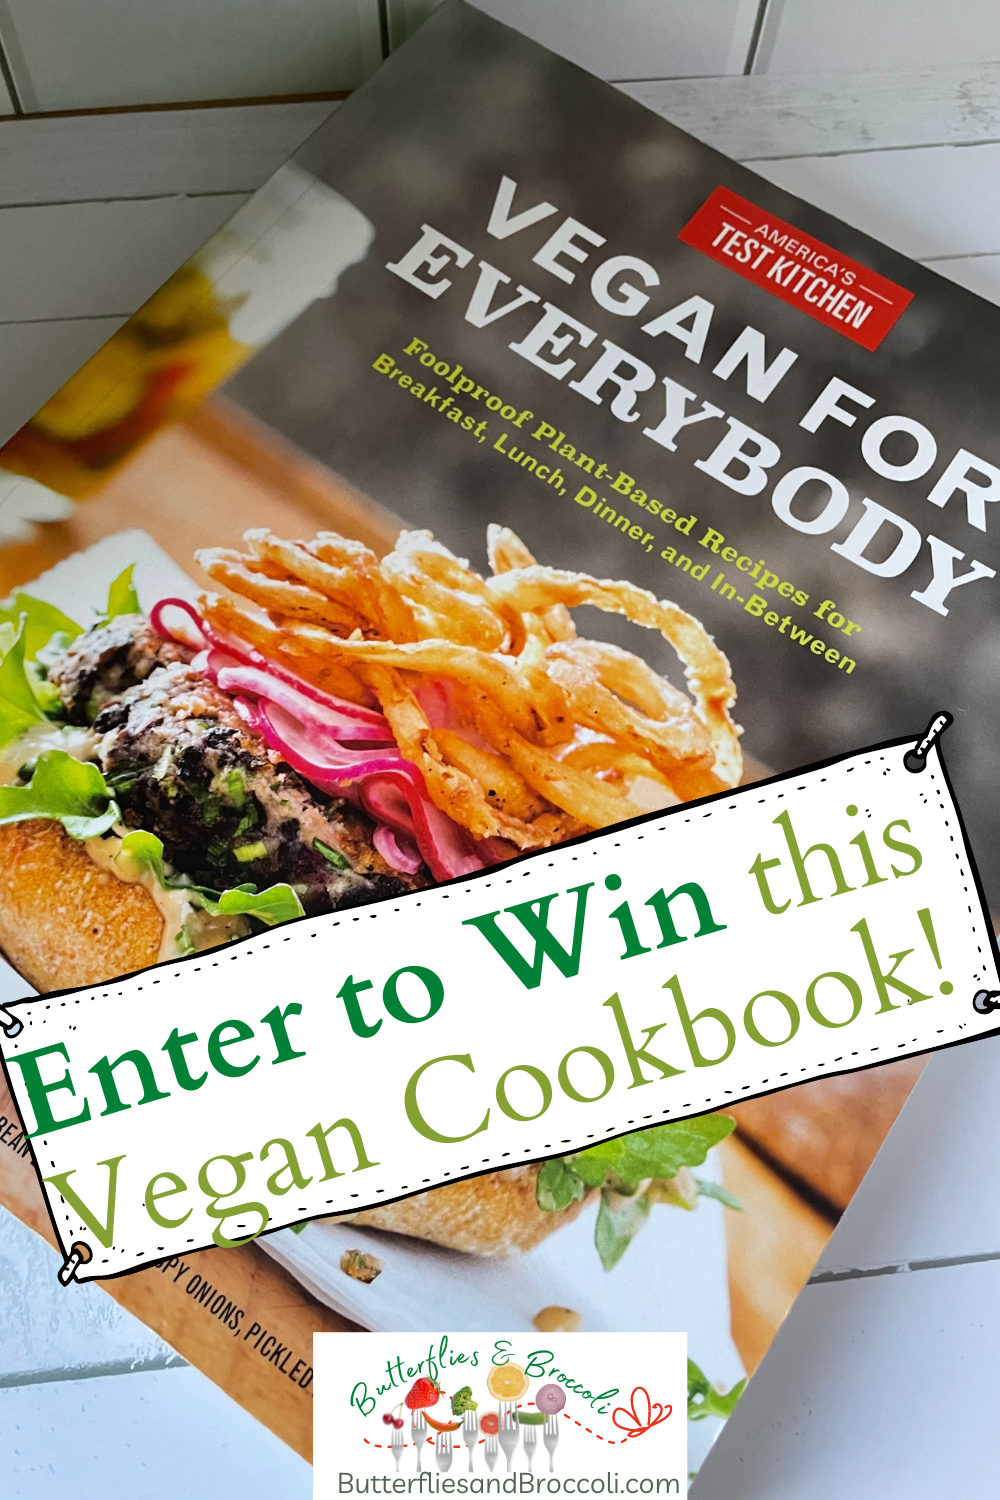 """Image of cookbook """"vegan for everybody"""" with text """"Enter to win this vegan cookbook"""""""